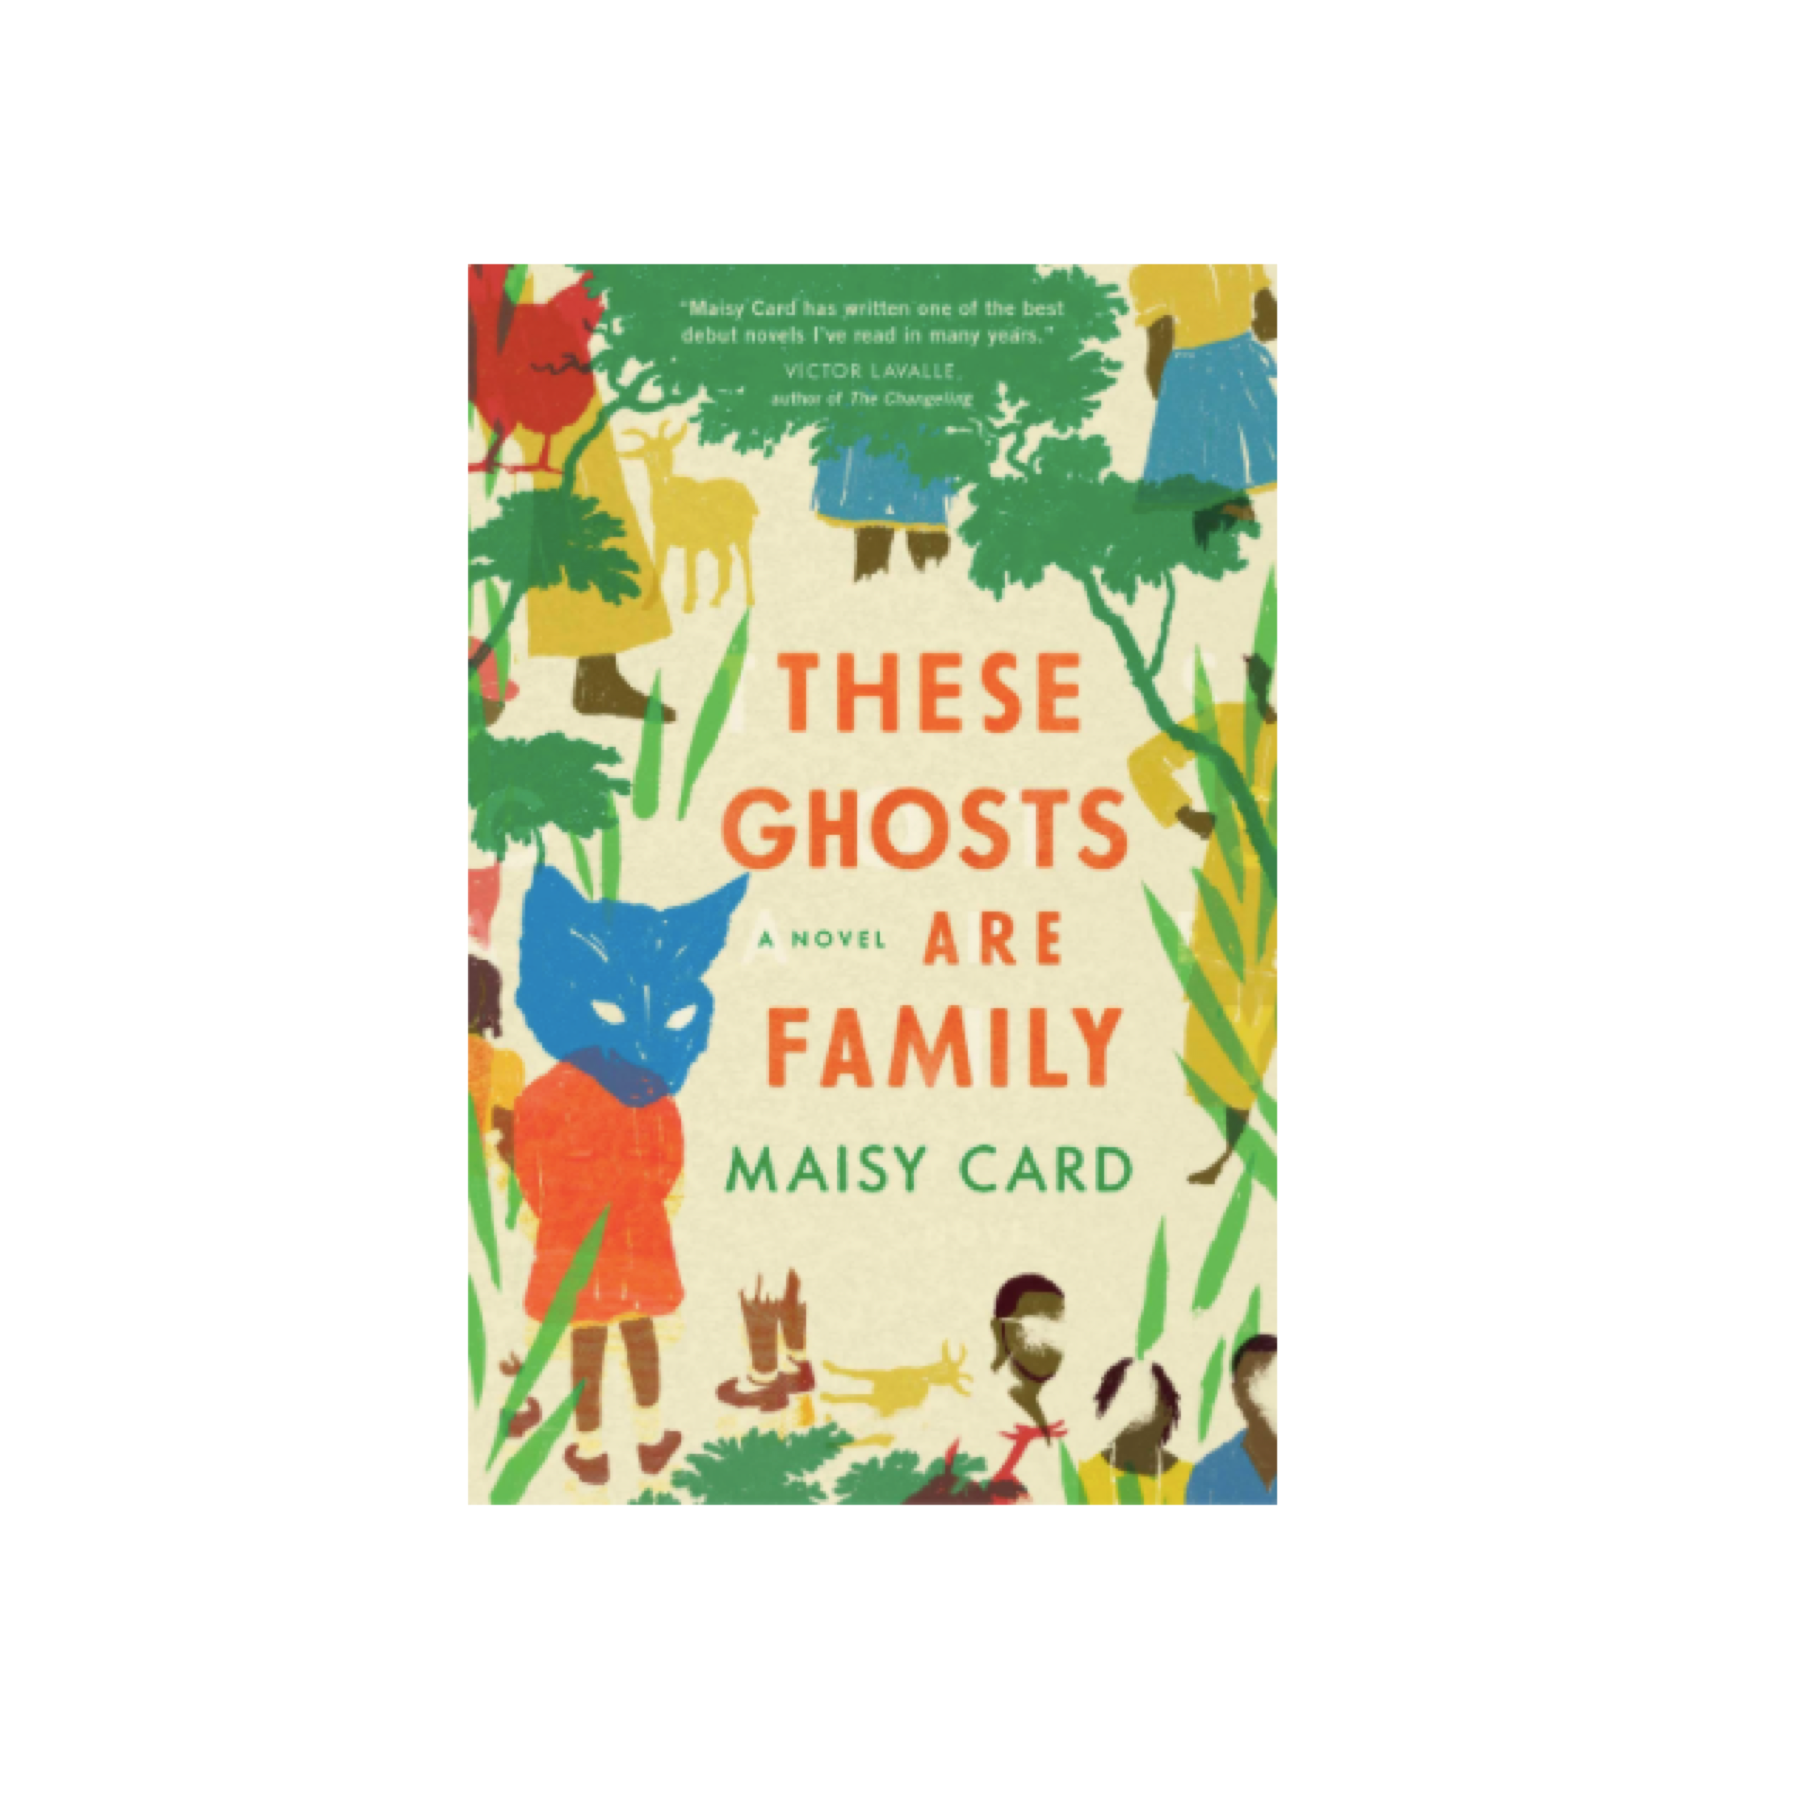 these ghosts are family novel by maisy card